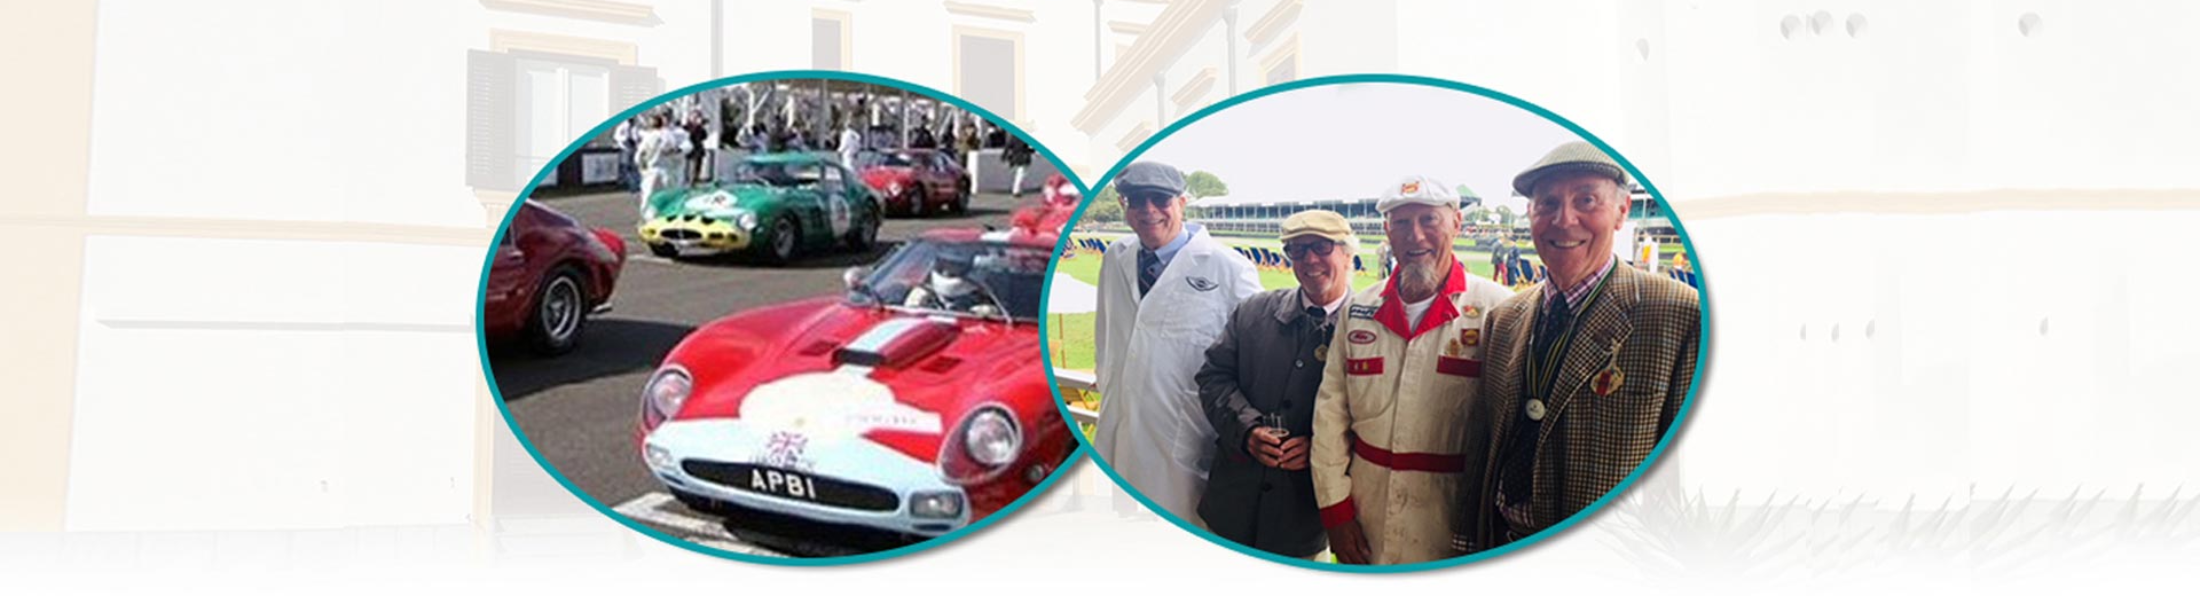 Collage of Red Racing Car and Men Smiling